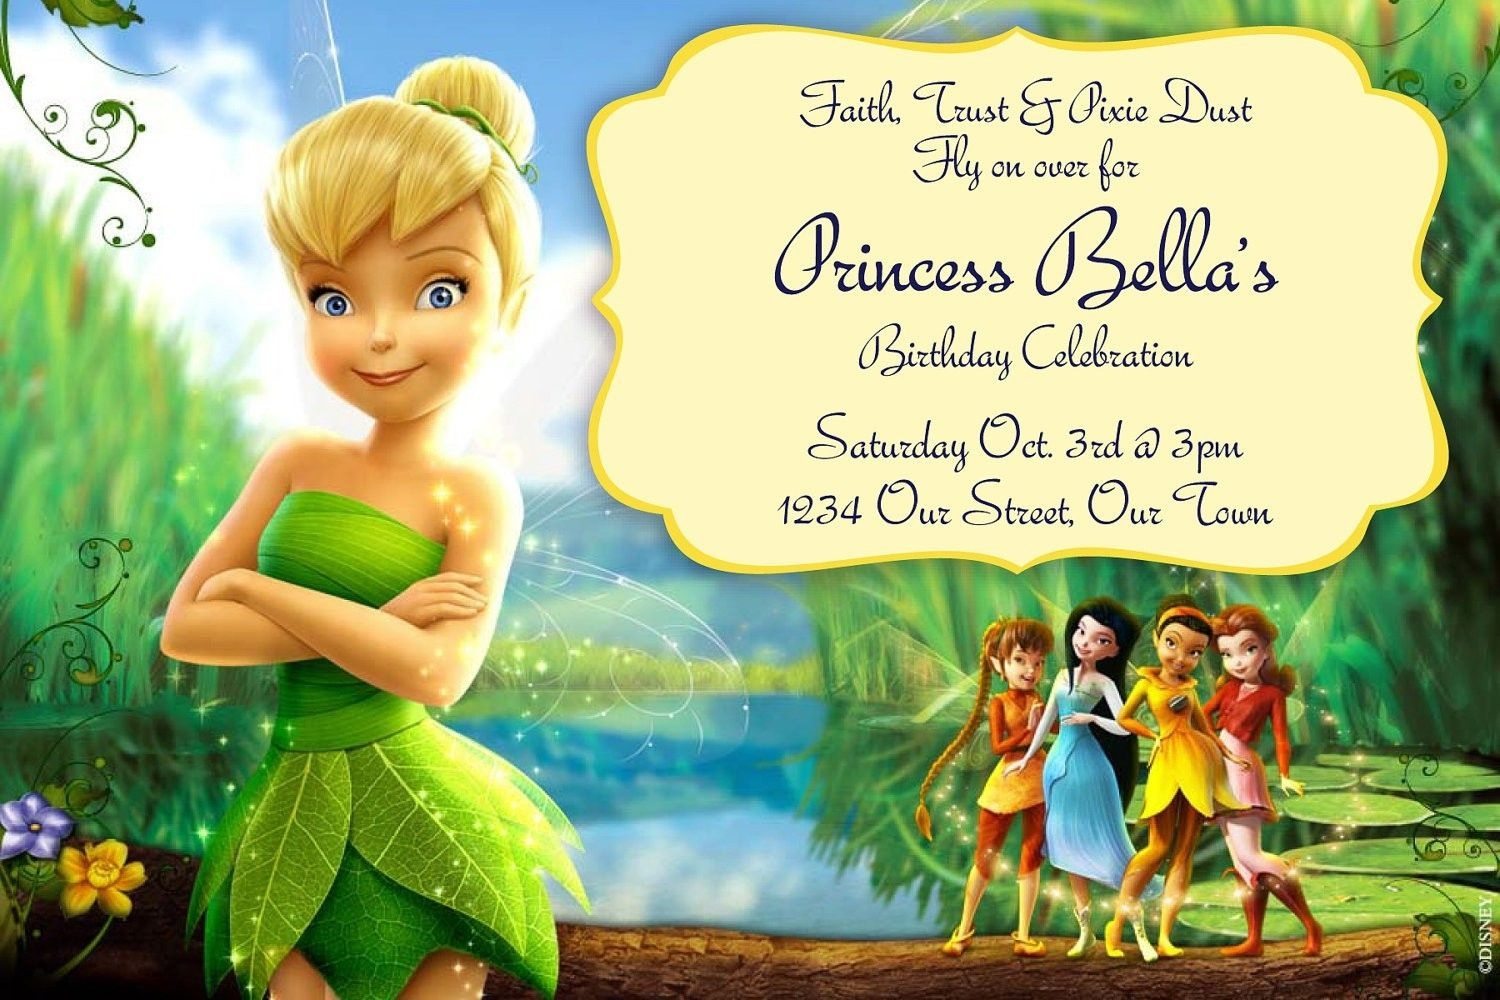 Free Tinkerbell Birthday Invitation Templates | Birthdays - Free Tinkerbell Printable Birthday Invitations